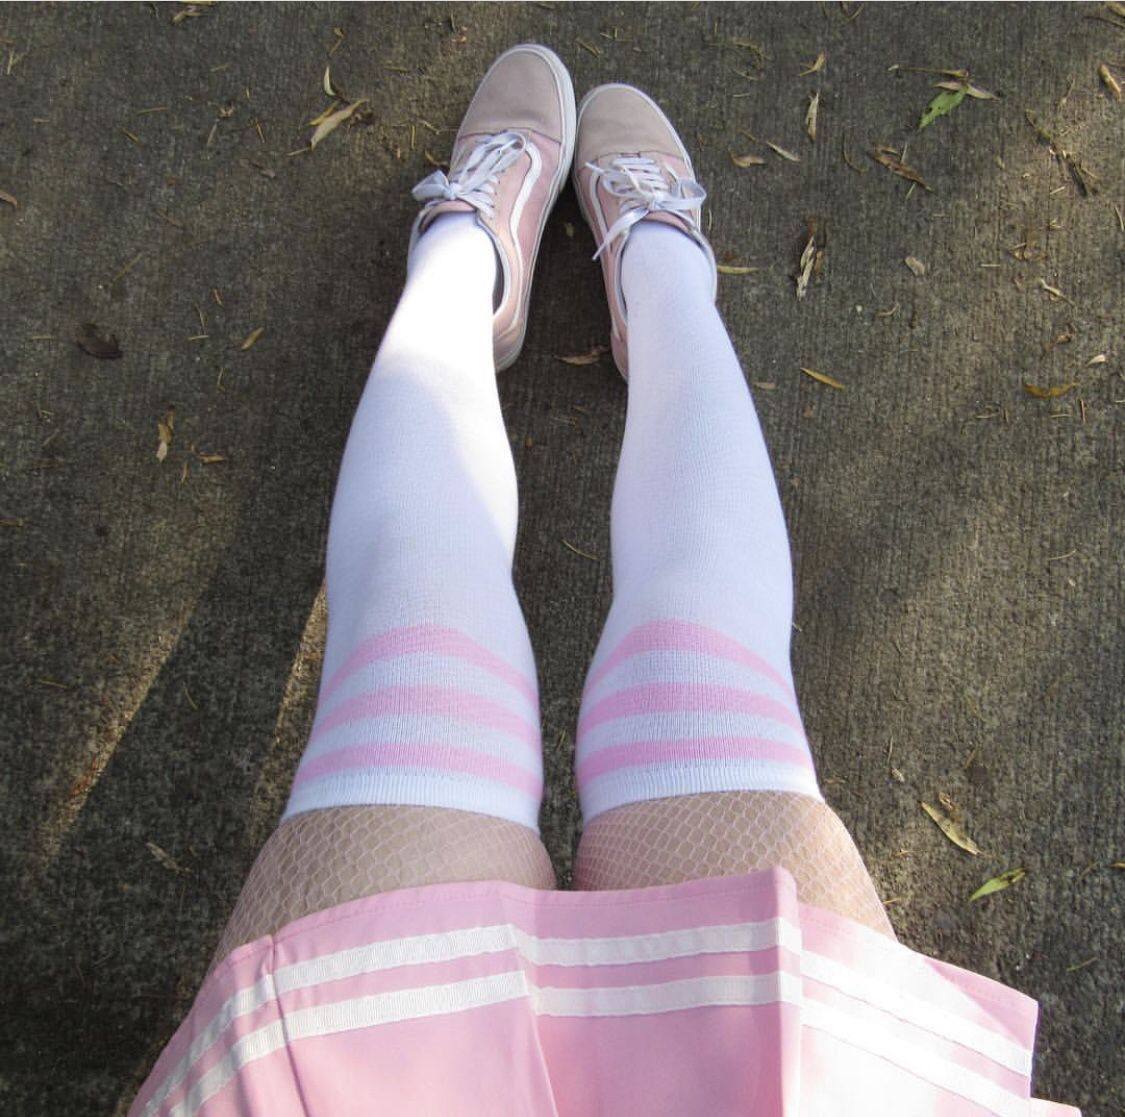 Kawaii queen pastel aesthetic outfit aesthetic